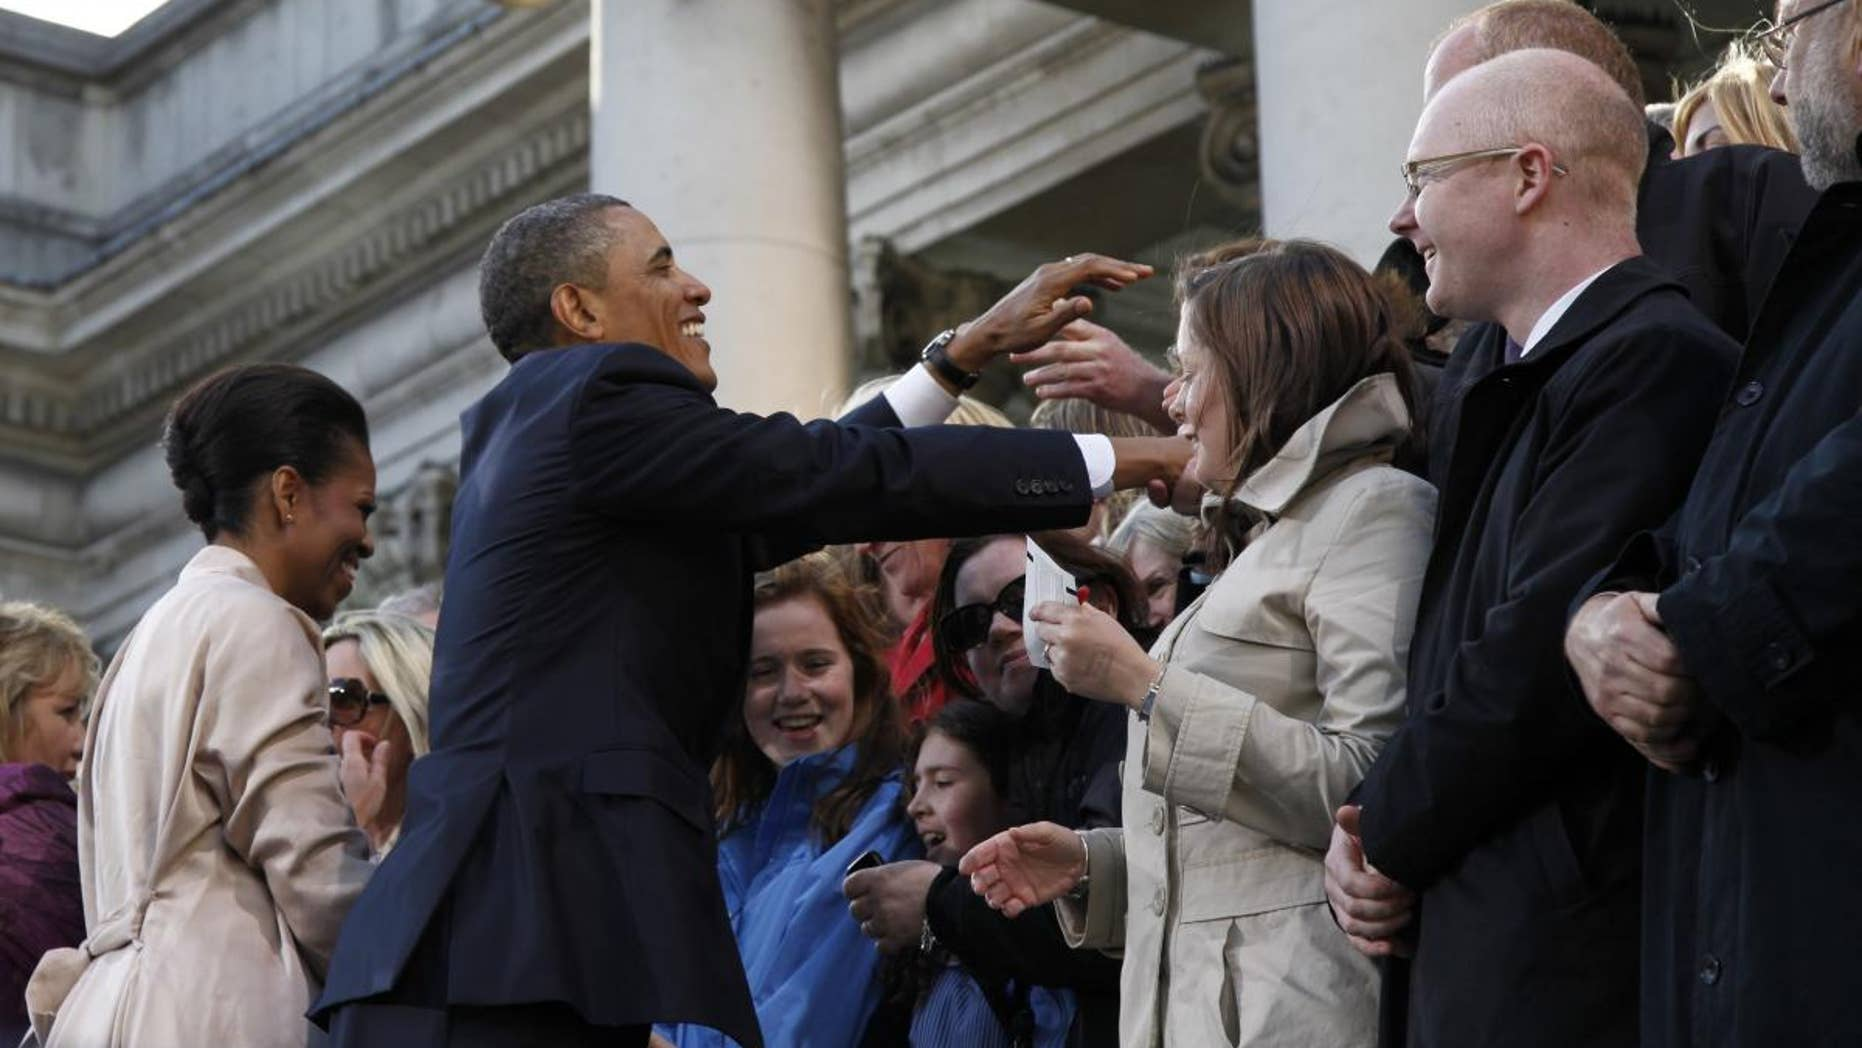 U.S. President Barack Obama and first lady Michelle Obama greet the crowd at College Green in Dublin, Ireland, Monday, May 23, 2011. (AP Photo/Charles Dharapak)